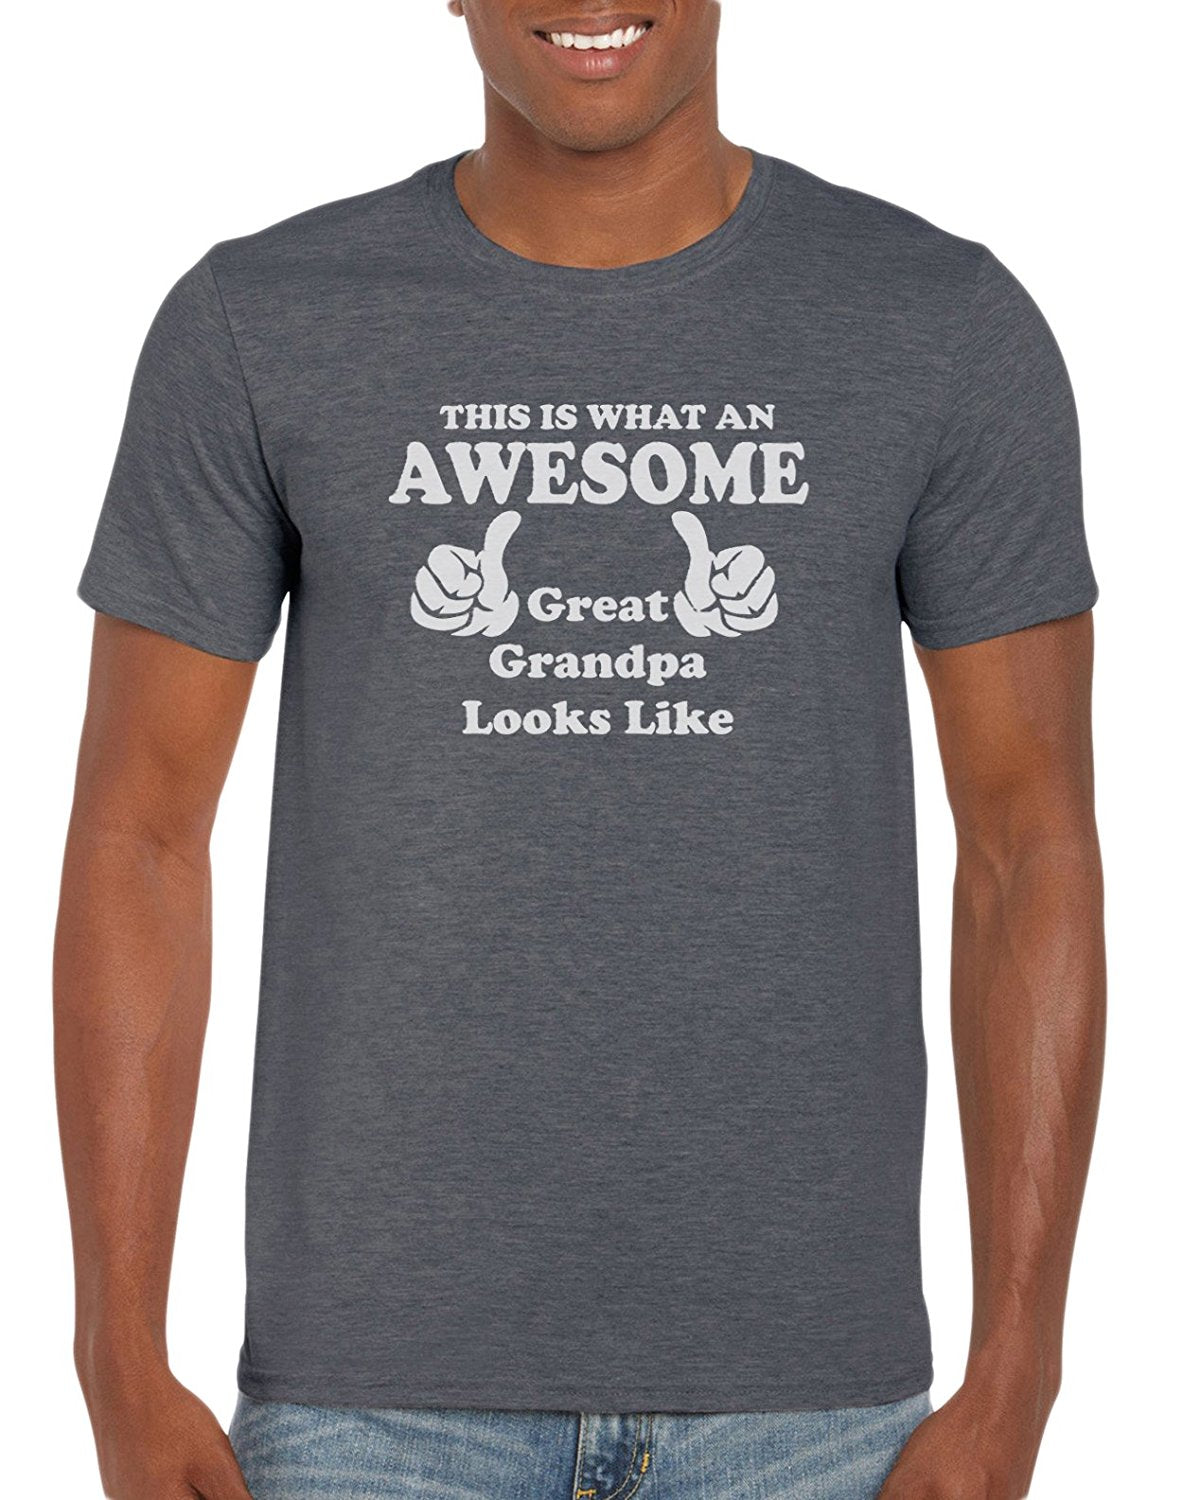 96223def This Is What An Awesome Great Grandpa Looks Like. Graphic T-Shirt Gift Idea